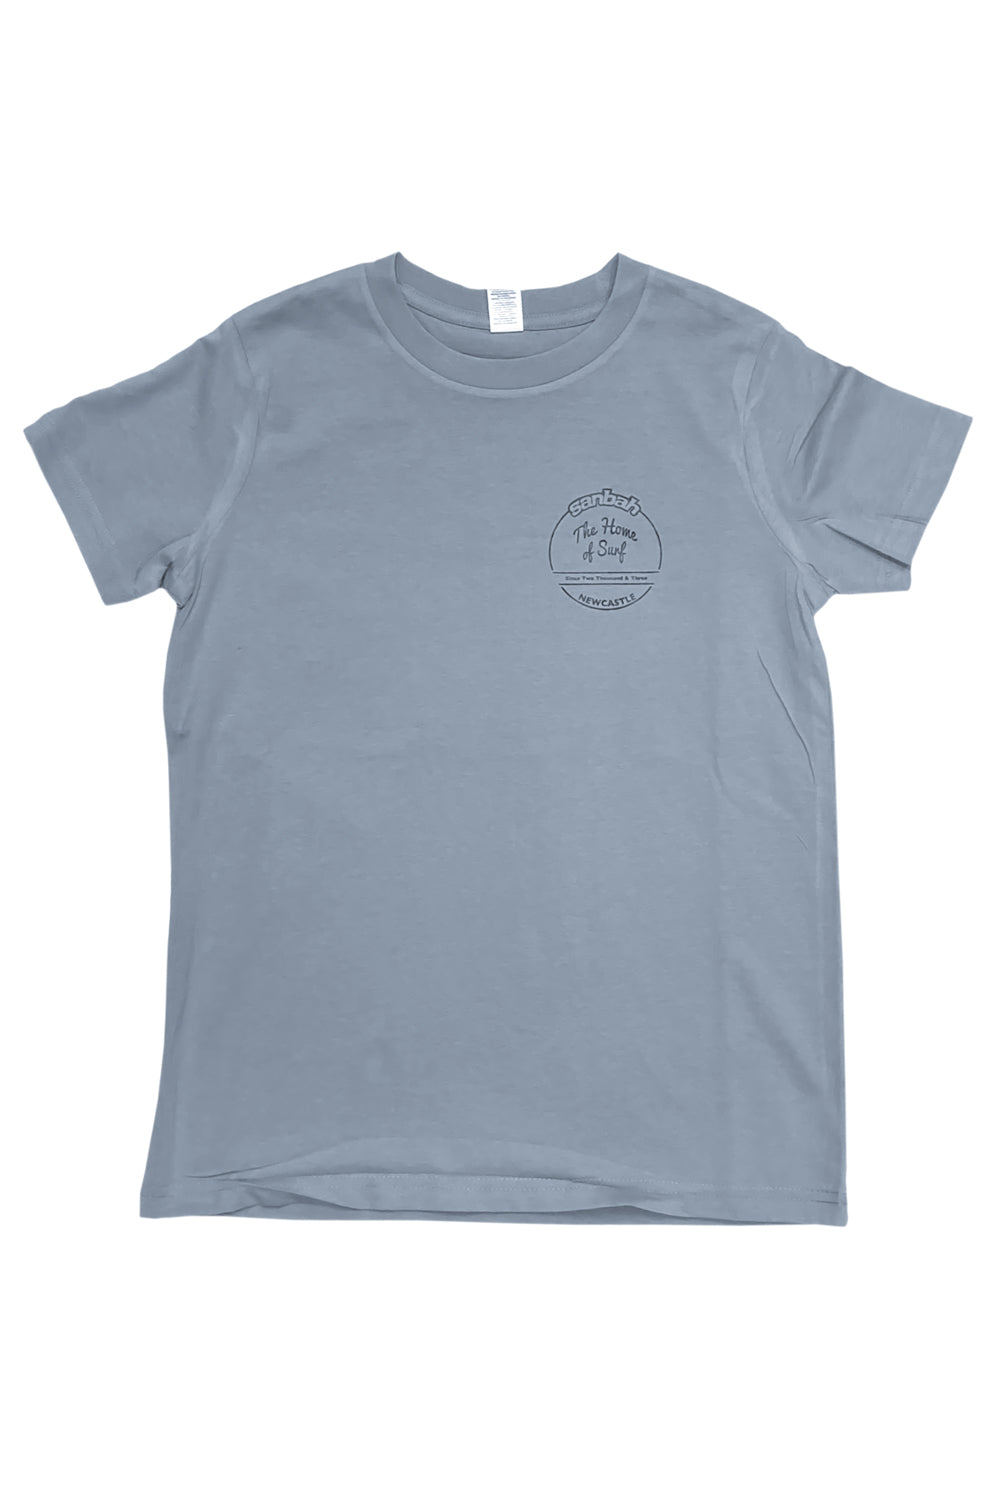 Sanbah Kids Home Of Surf T-Shirt Carolina Blue